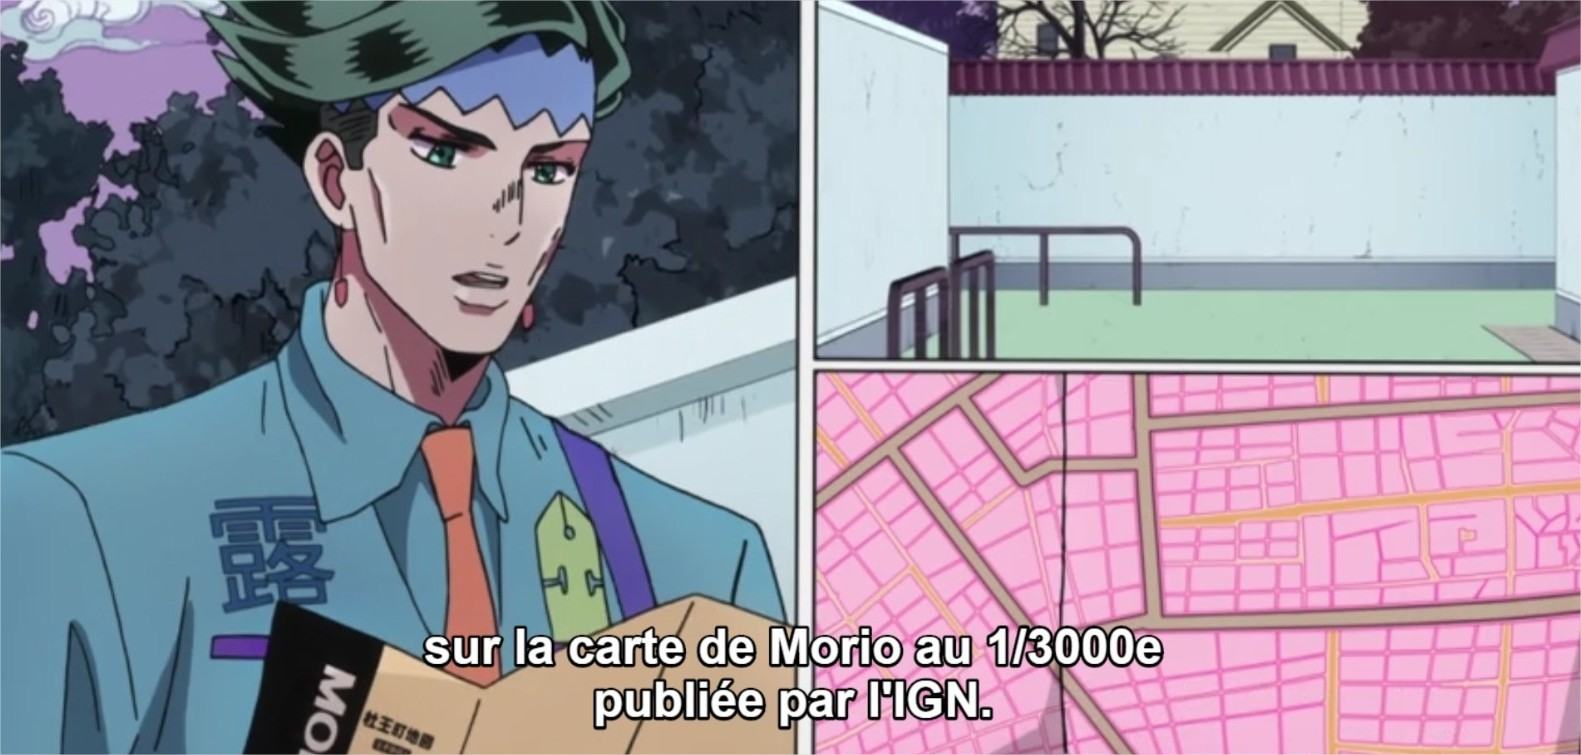 Jojo's Bizarre Adventure Saison 3 Diamond is Unbreakable - Épisode 17 - streaming - VOSTFR - ADN - Google Chrome_21 - Visionneuse_2